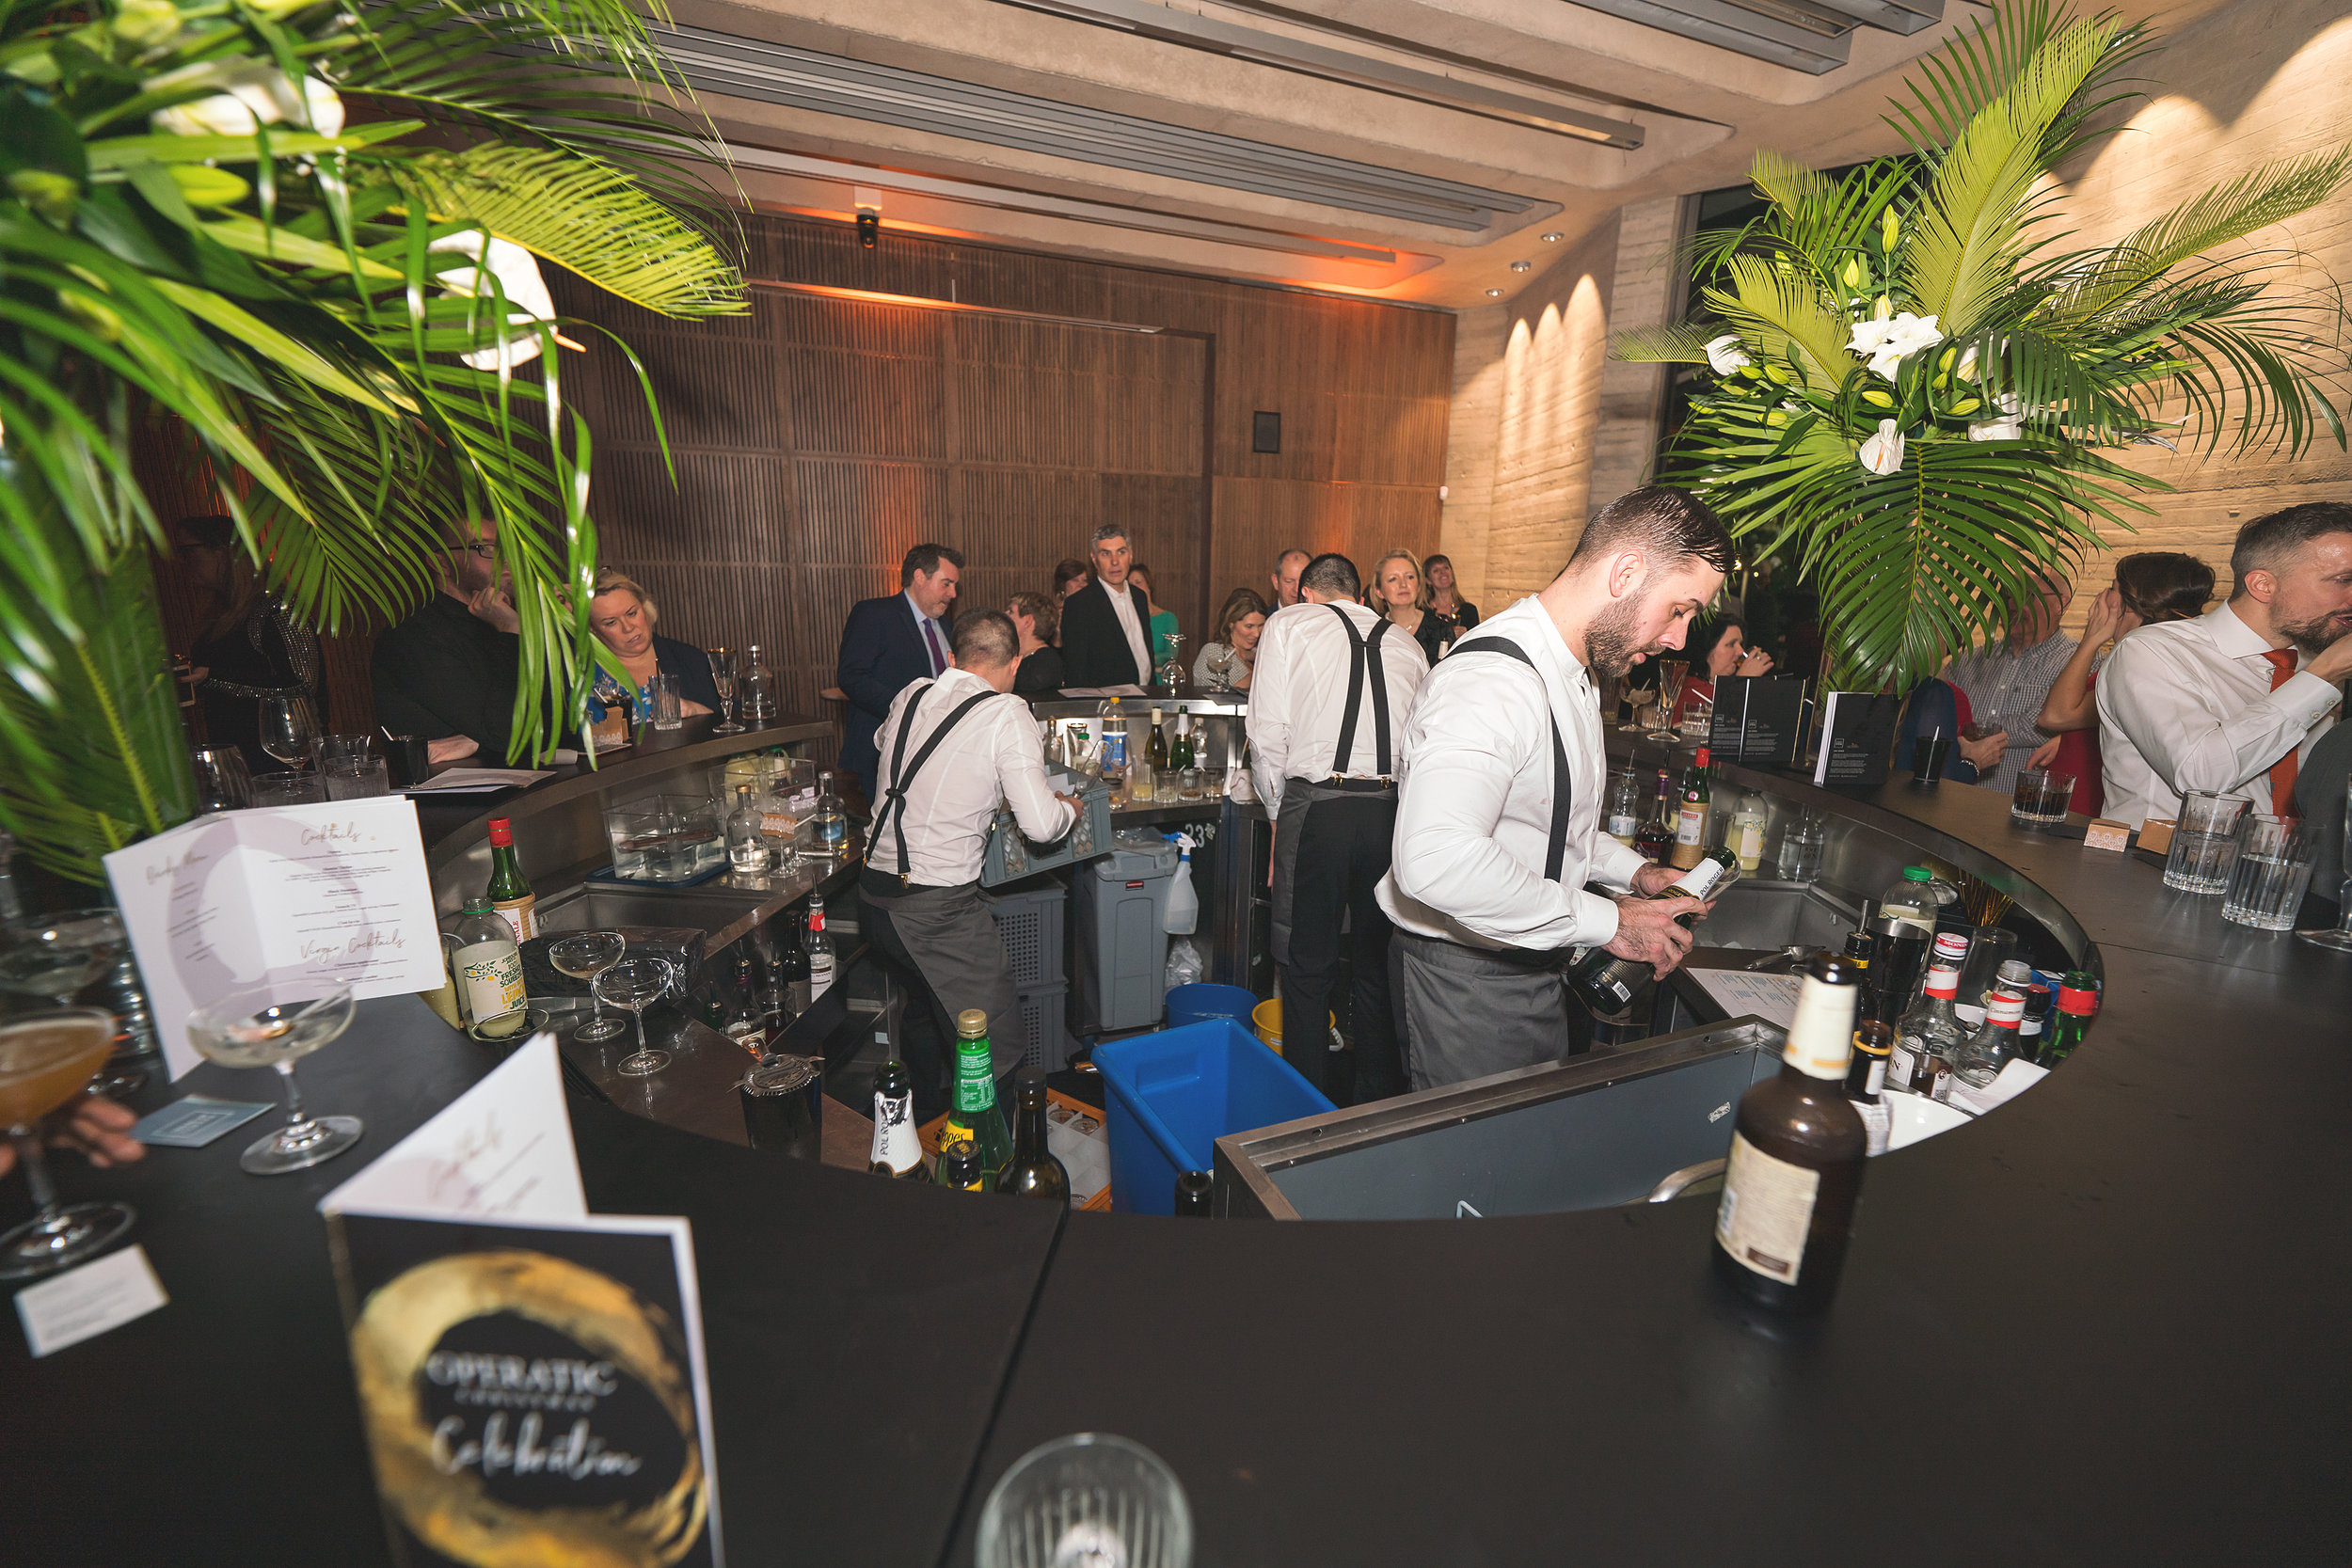 RRP_18_11_29_Vacheron_OCC-033_Events_Party_HiRes.jpg